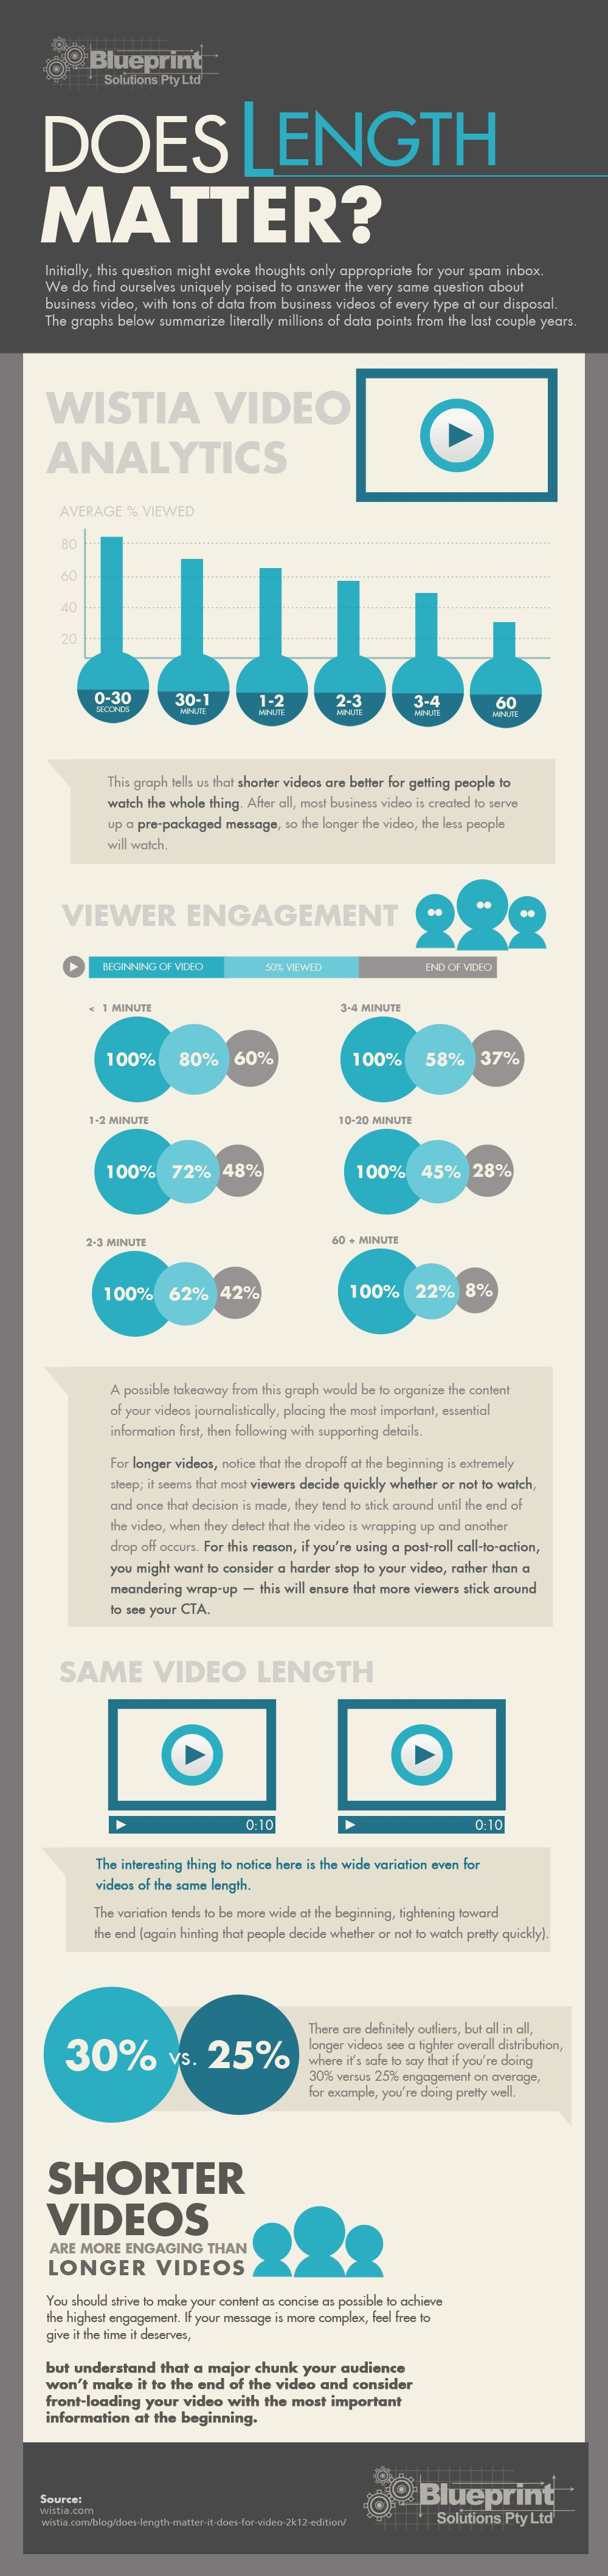 Length Vs Performance: Why It Matters! - Infographic